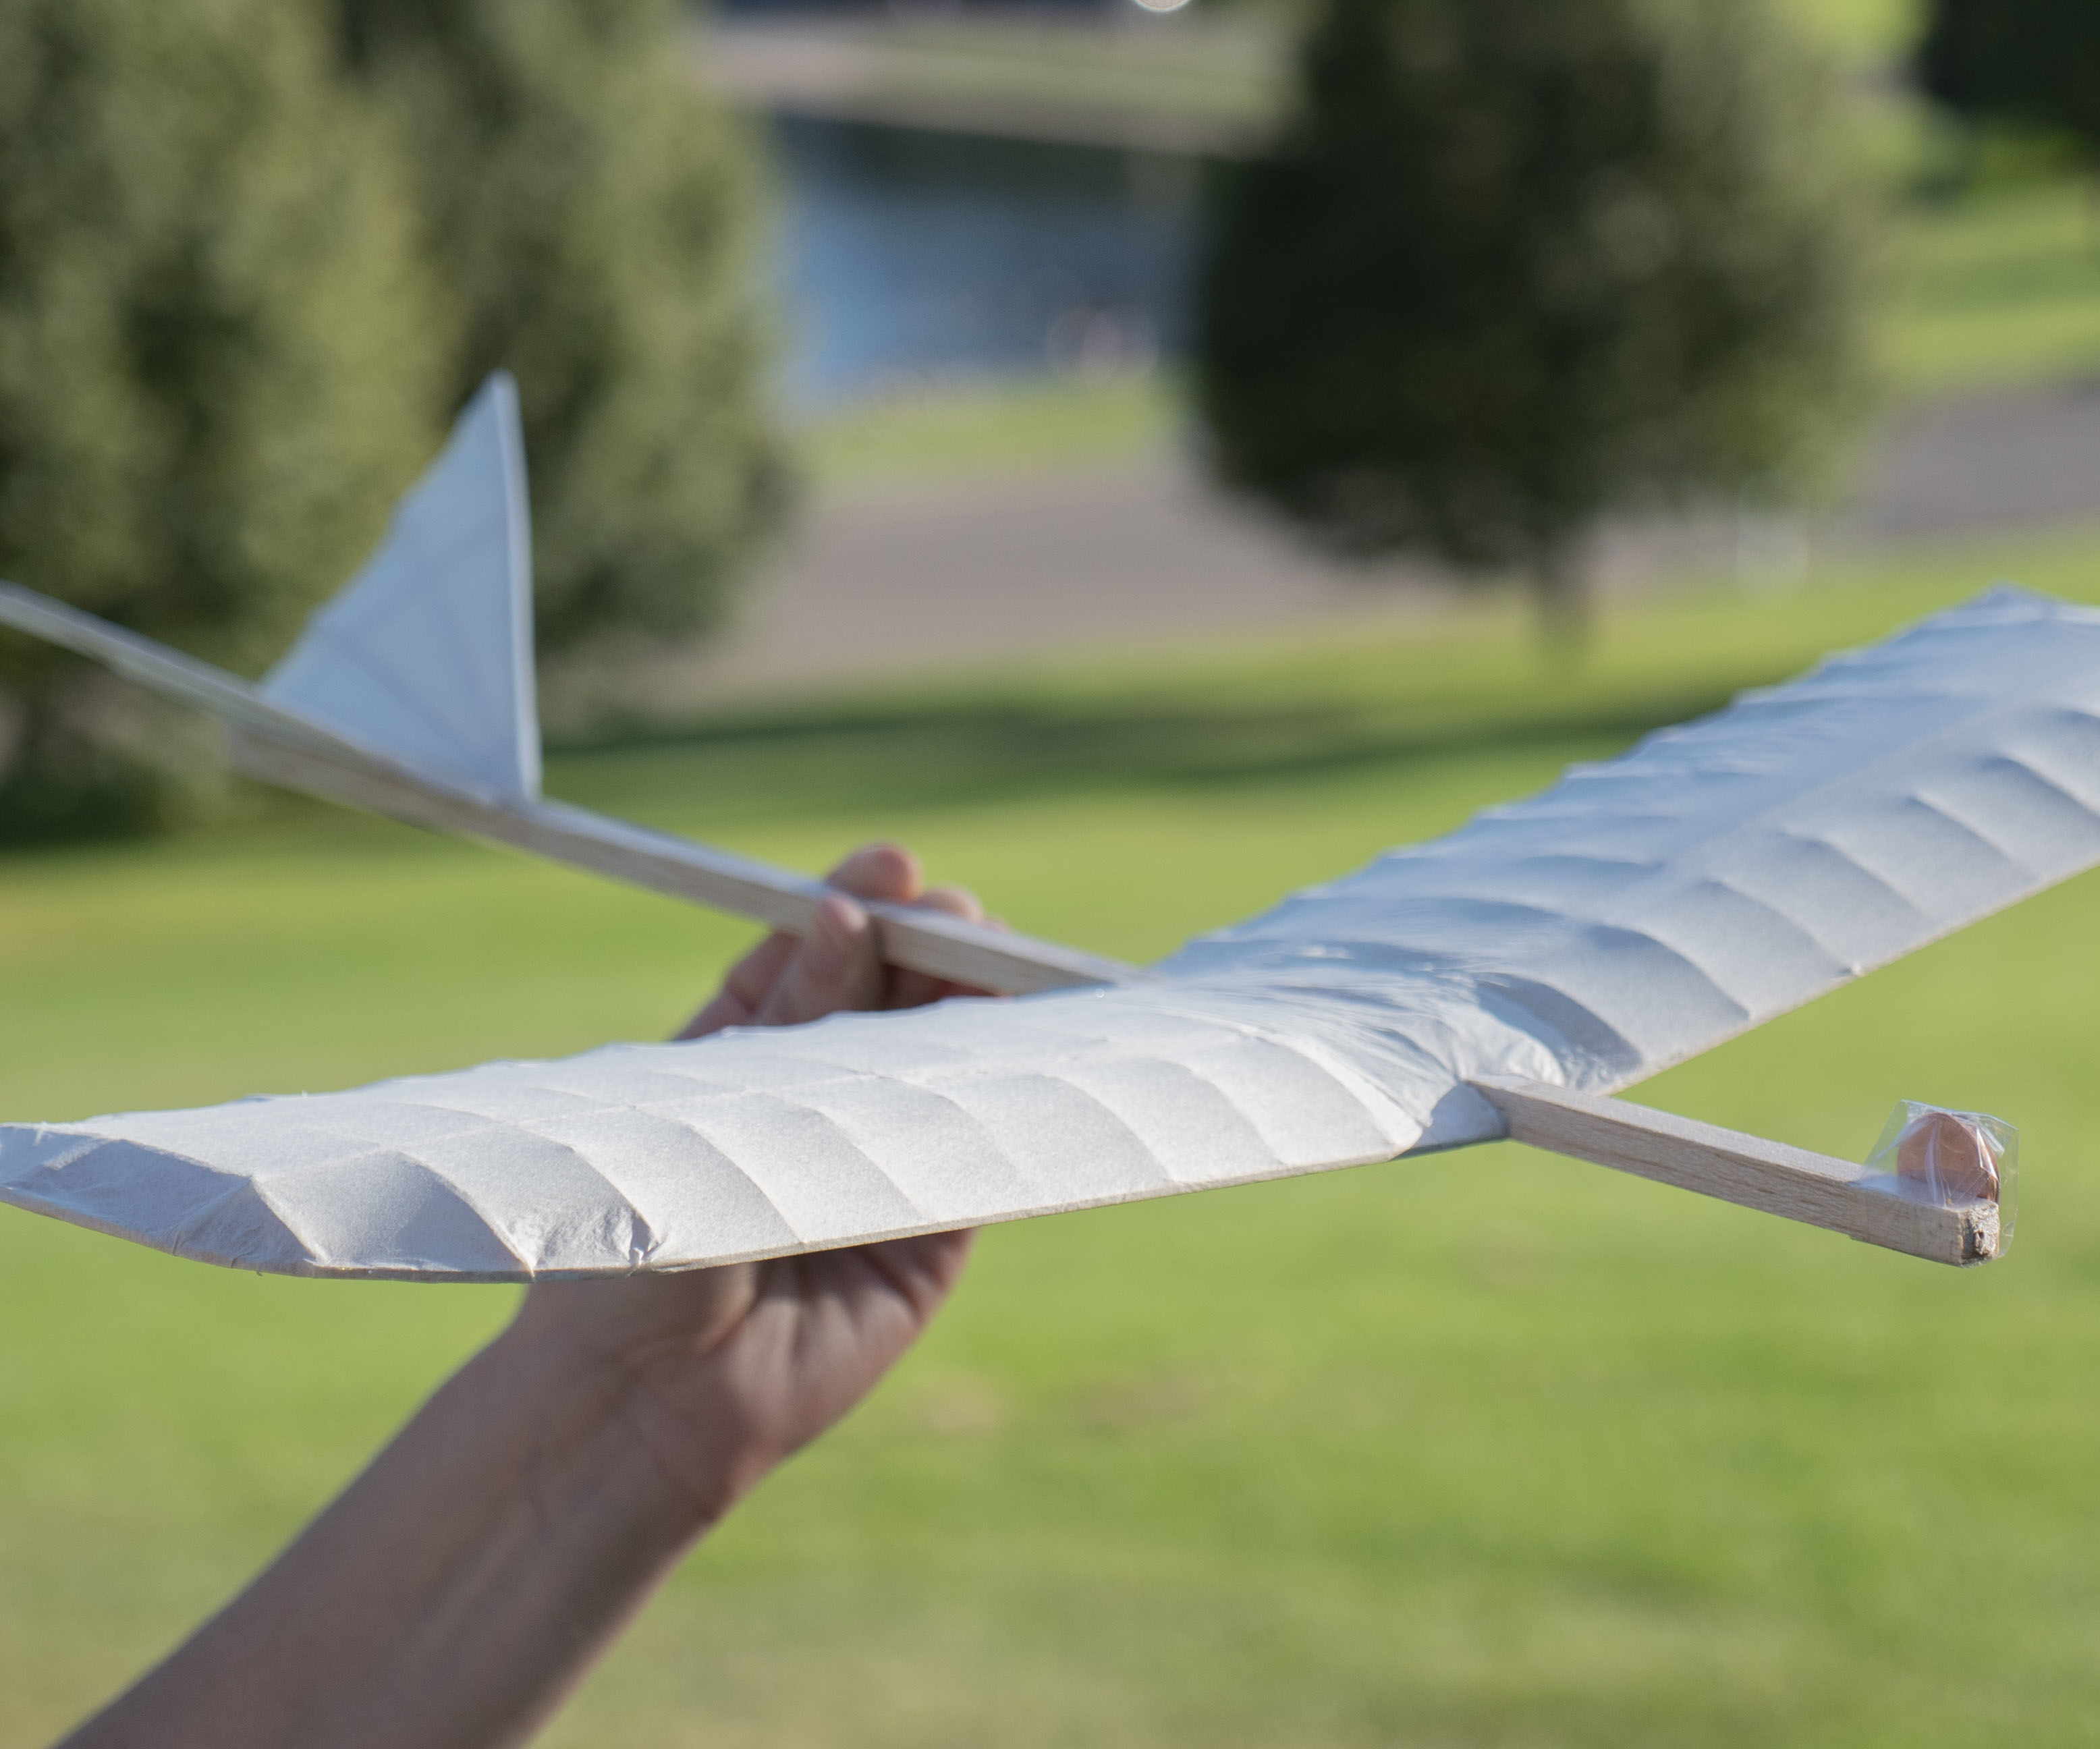 How to Build a Da Vinci Inspired Flying Machine (Glider) With Simple Supplies